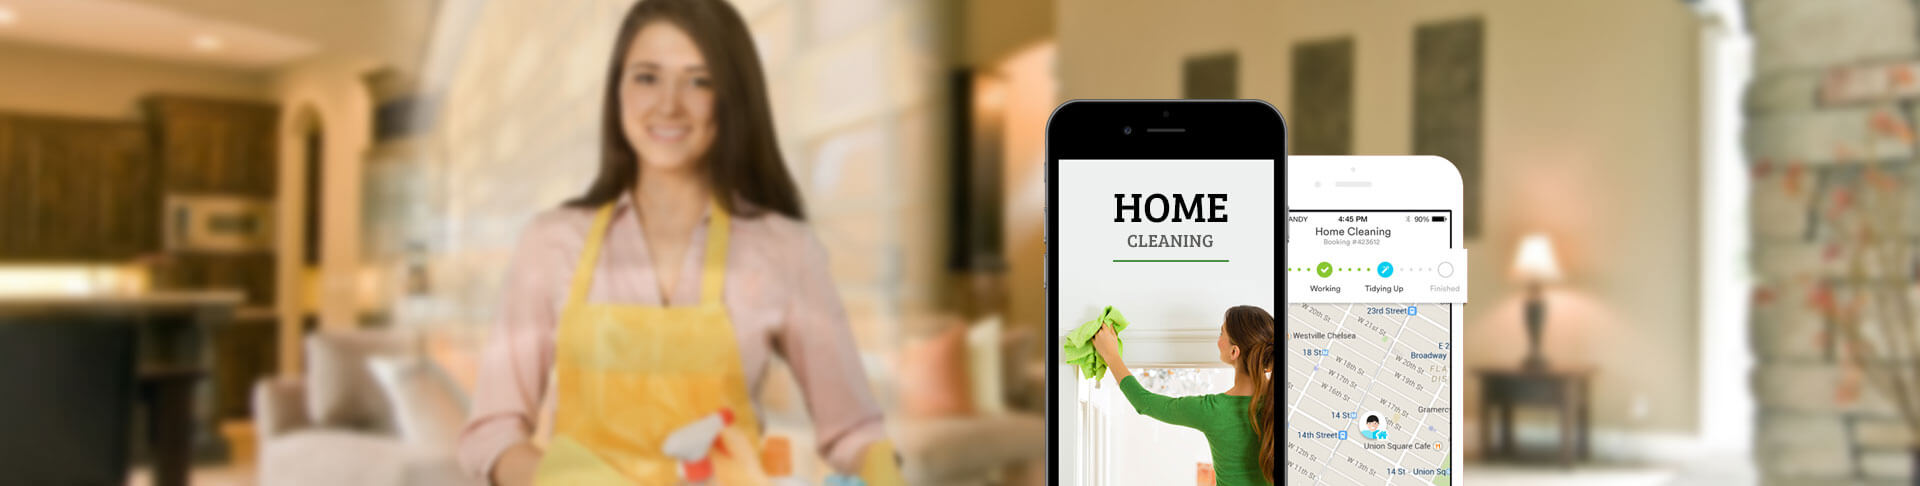 Home Cleaning App